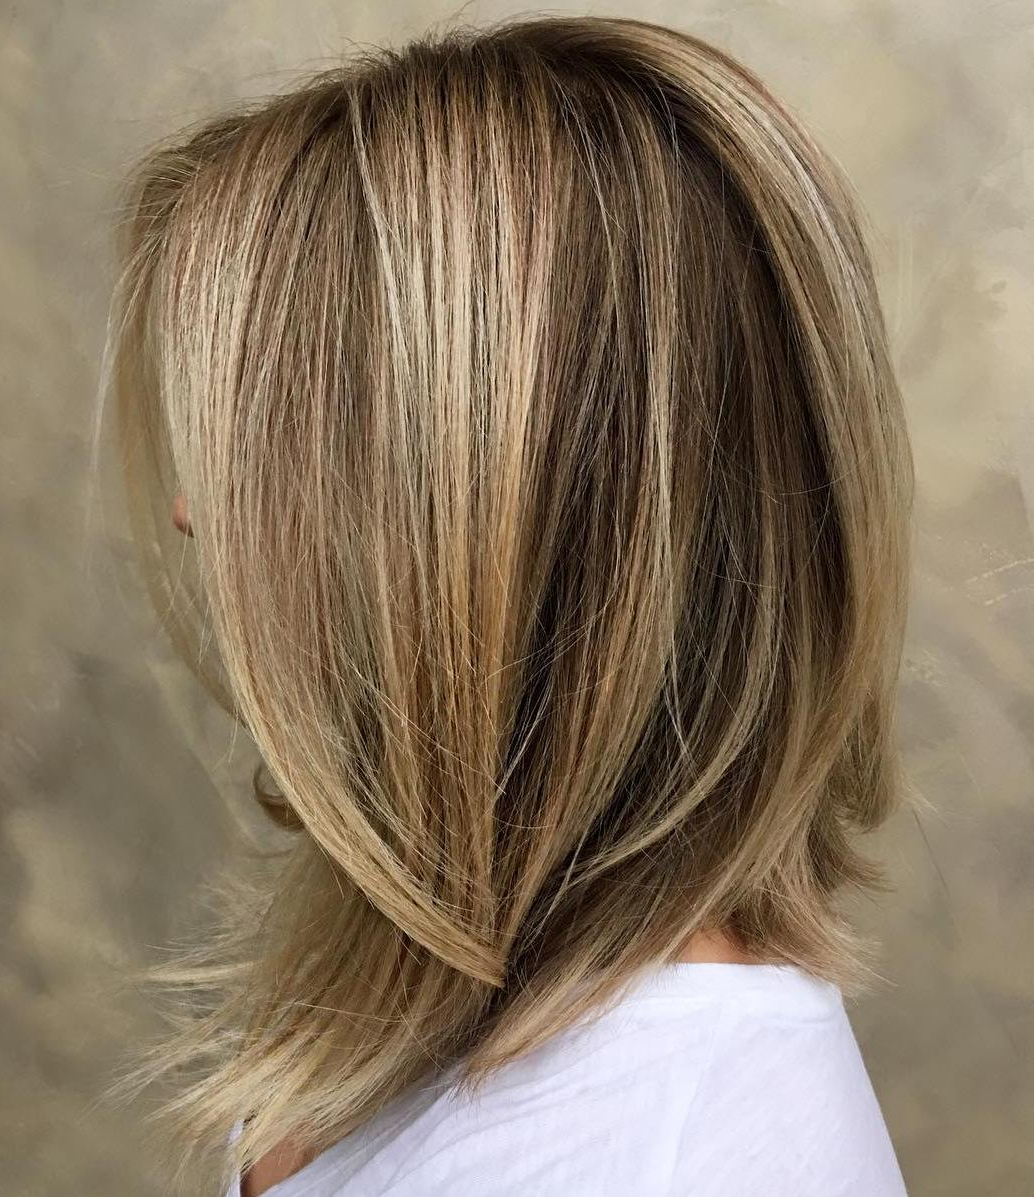 60 Inspiring Long Bob Hairstyles And Long Bob Haircuts For 2019 Throughout Newest Easy Side Downdo Hairstyles With Caramel Highlights (View 14 of 20)